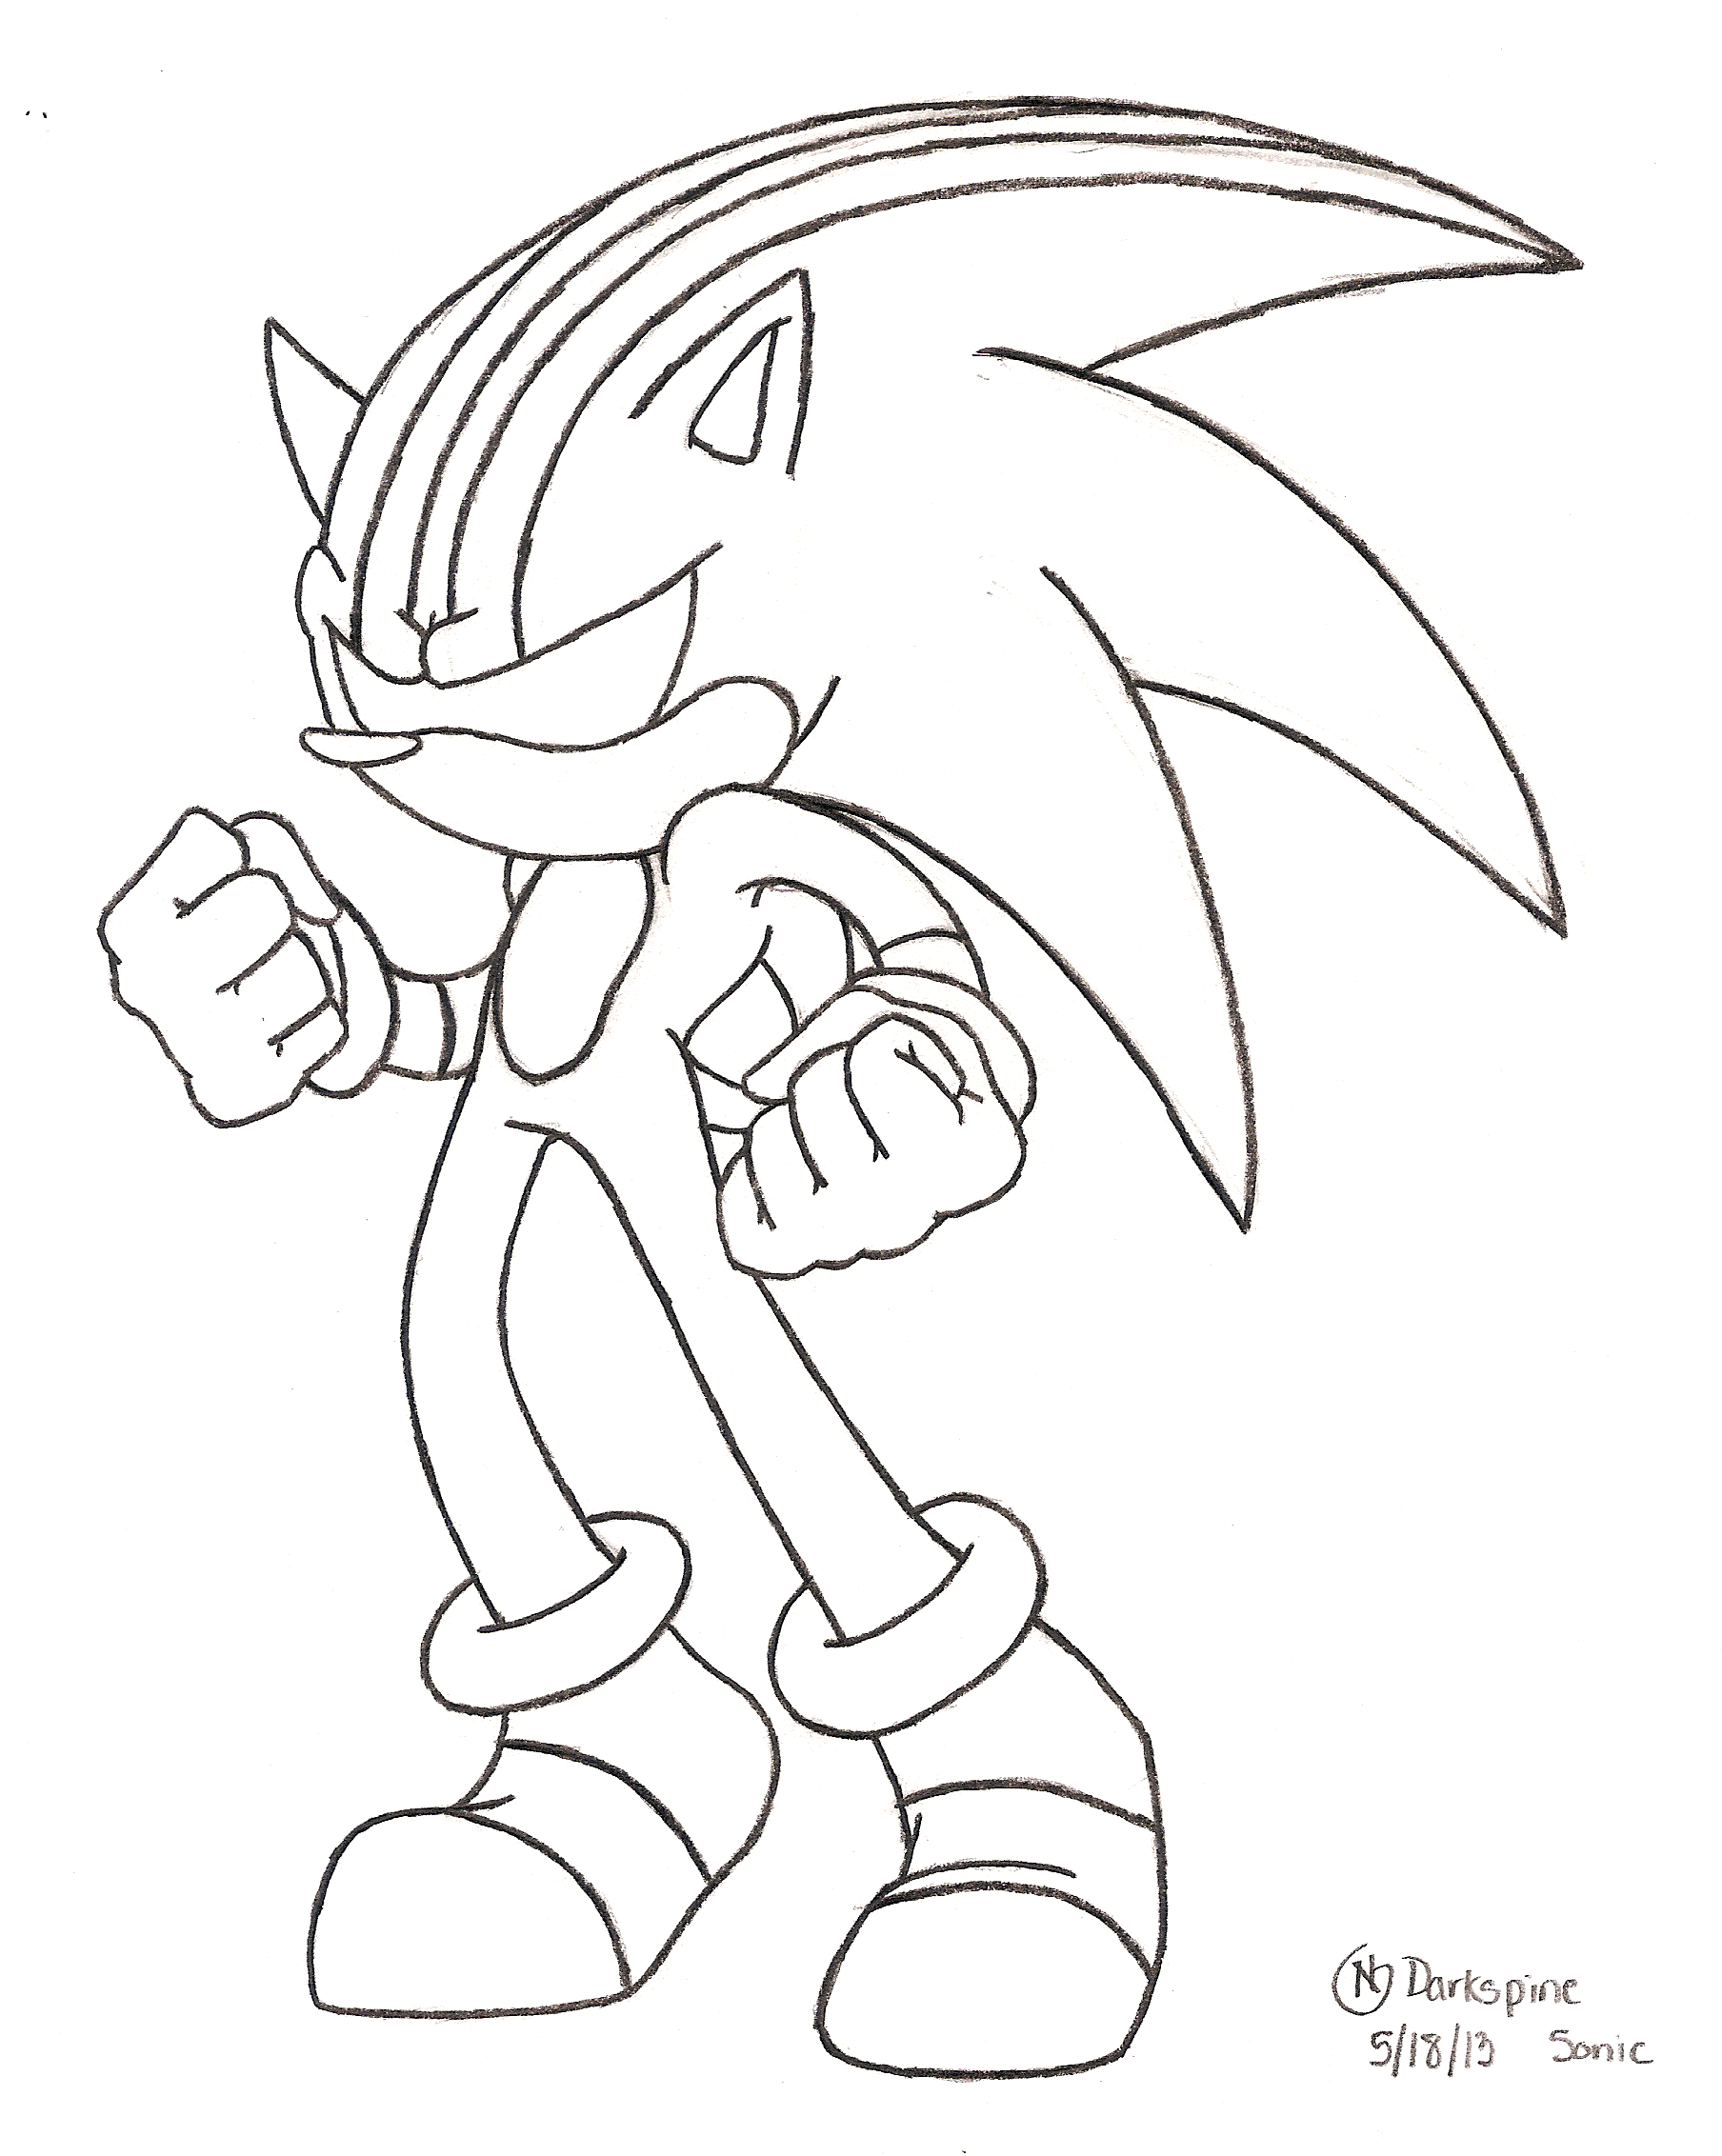 Darkspine Sonic - Free Coloring Pages